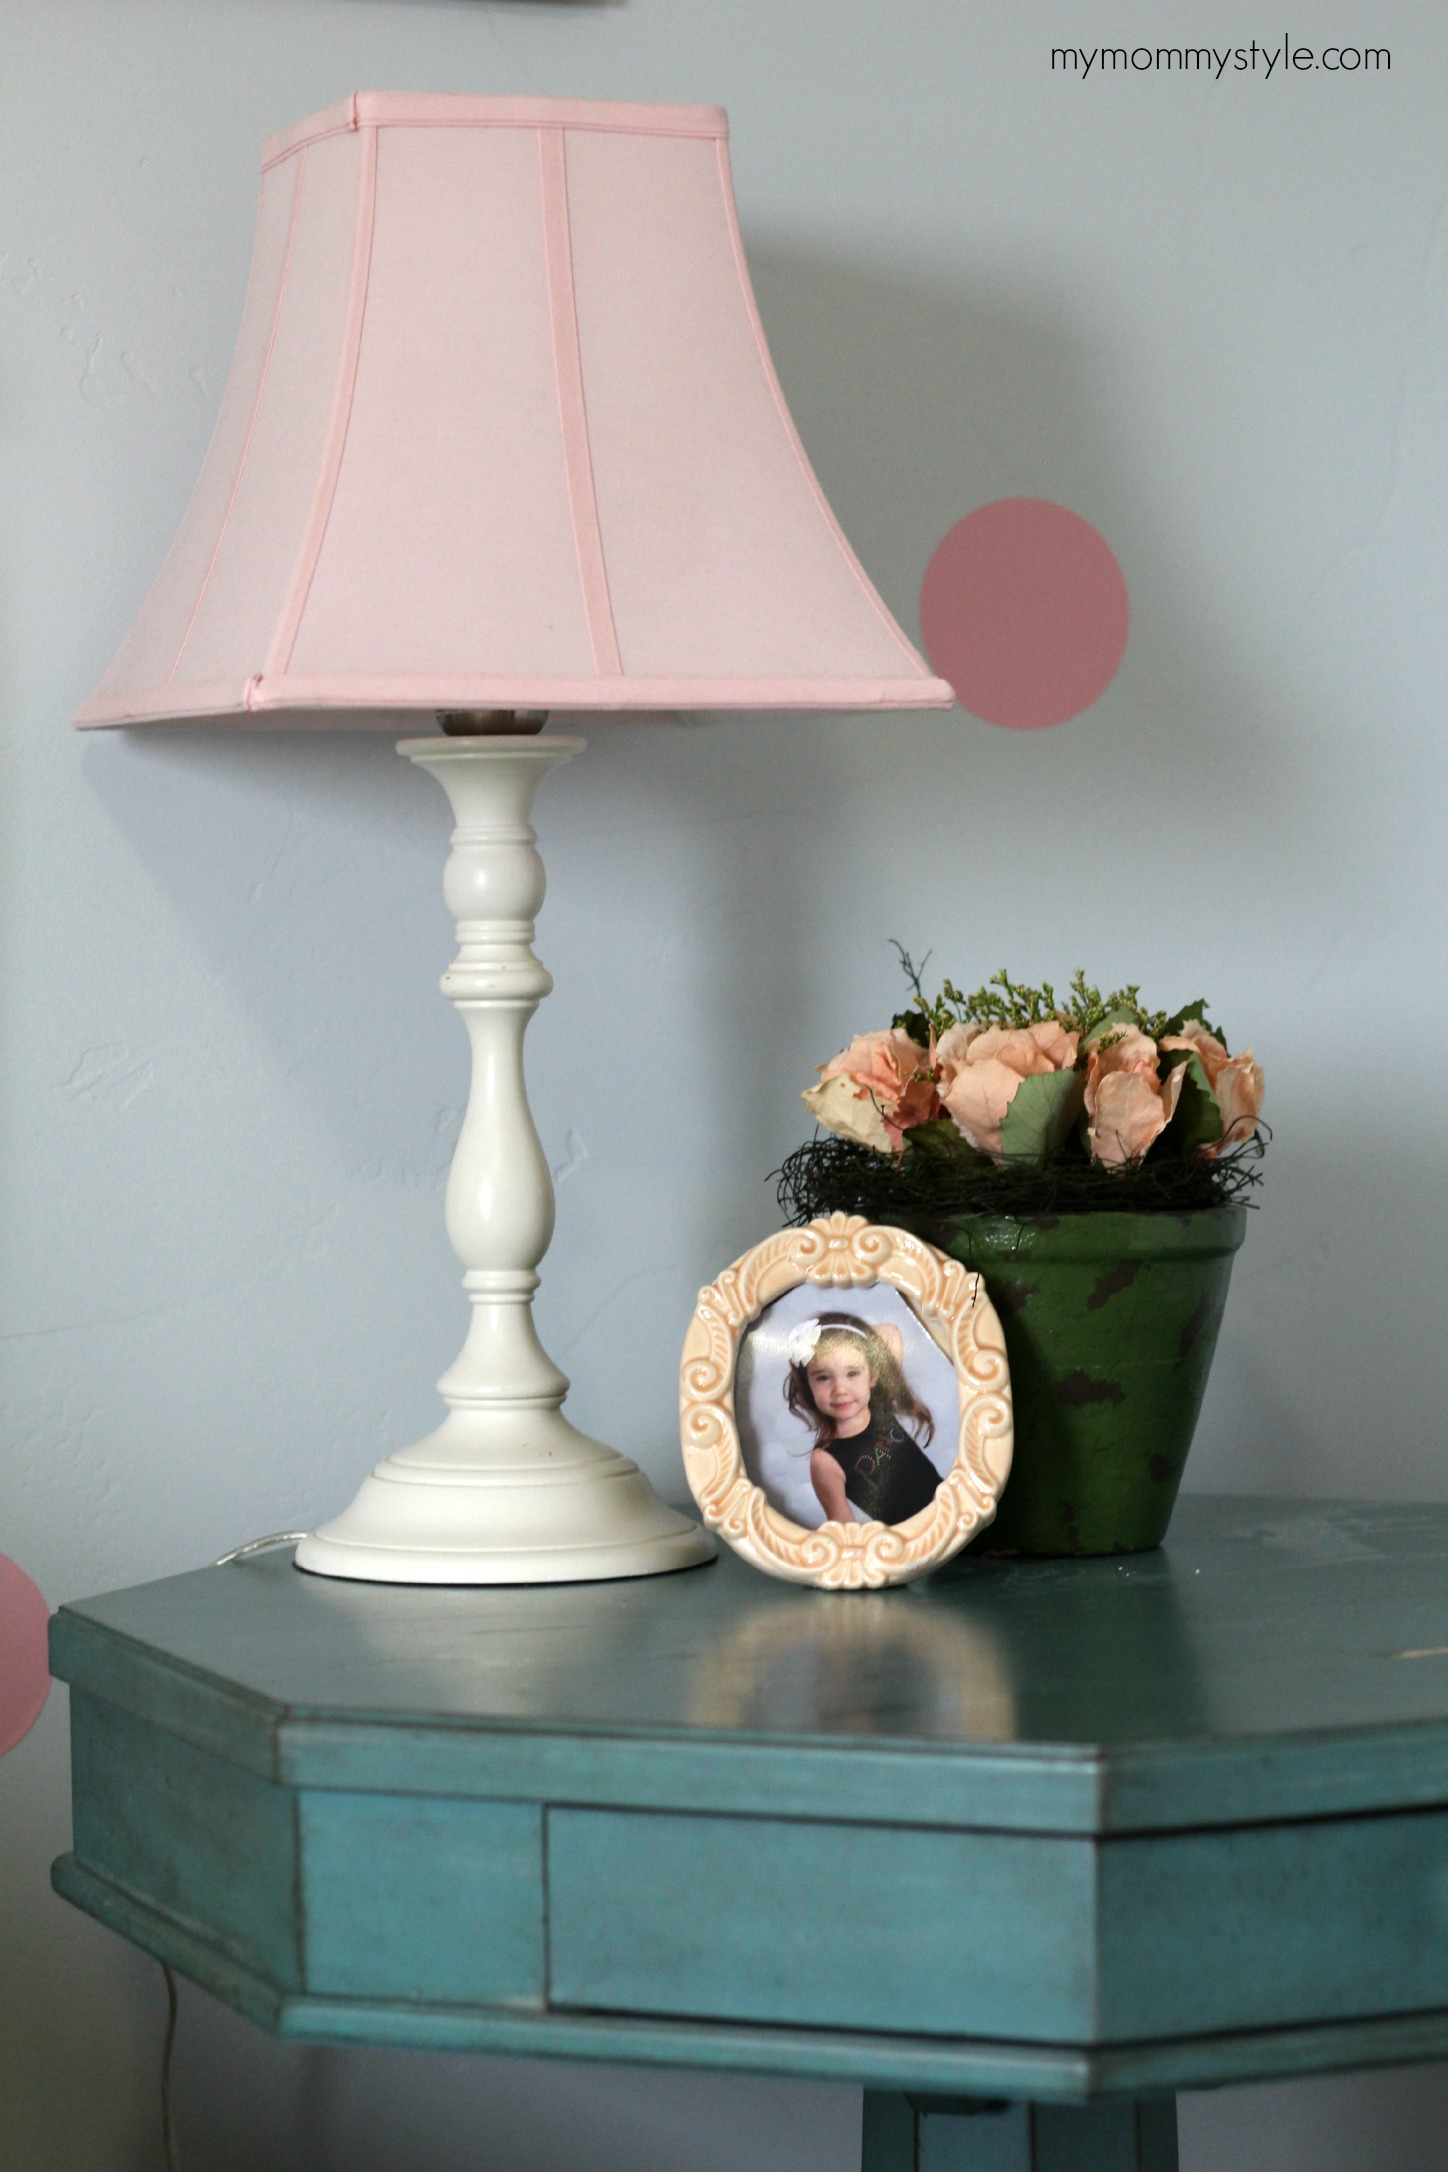 nightstand, little girls room, mymommystyle.com